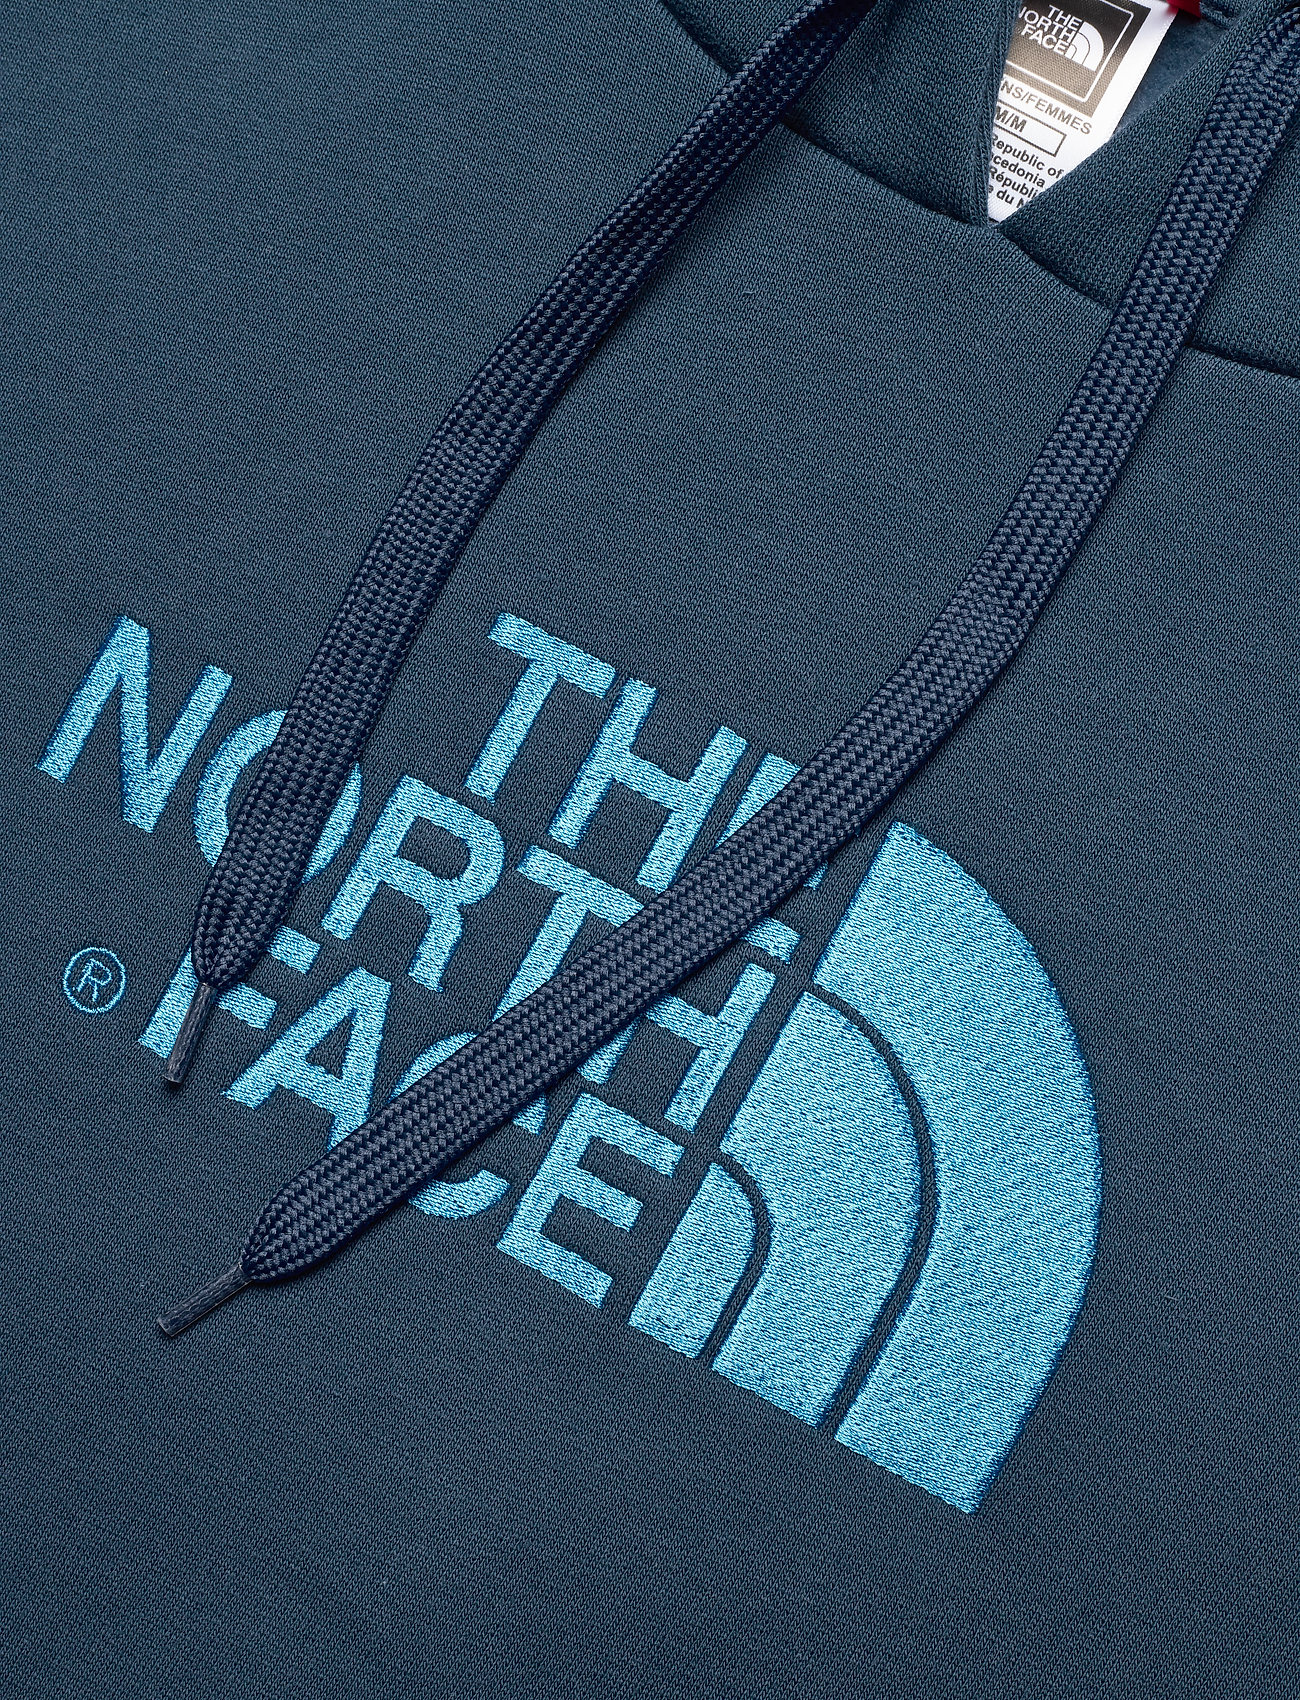 The North Face W DREW PEAK PULL HD - Sweatshirts BLUWGTL/CLRLKBL - Dameklær Spesialtilbud